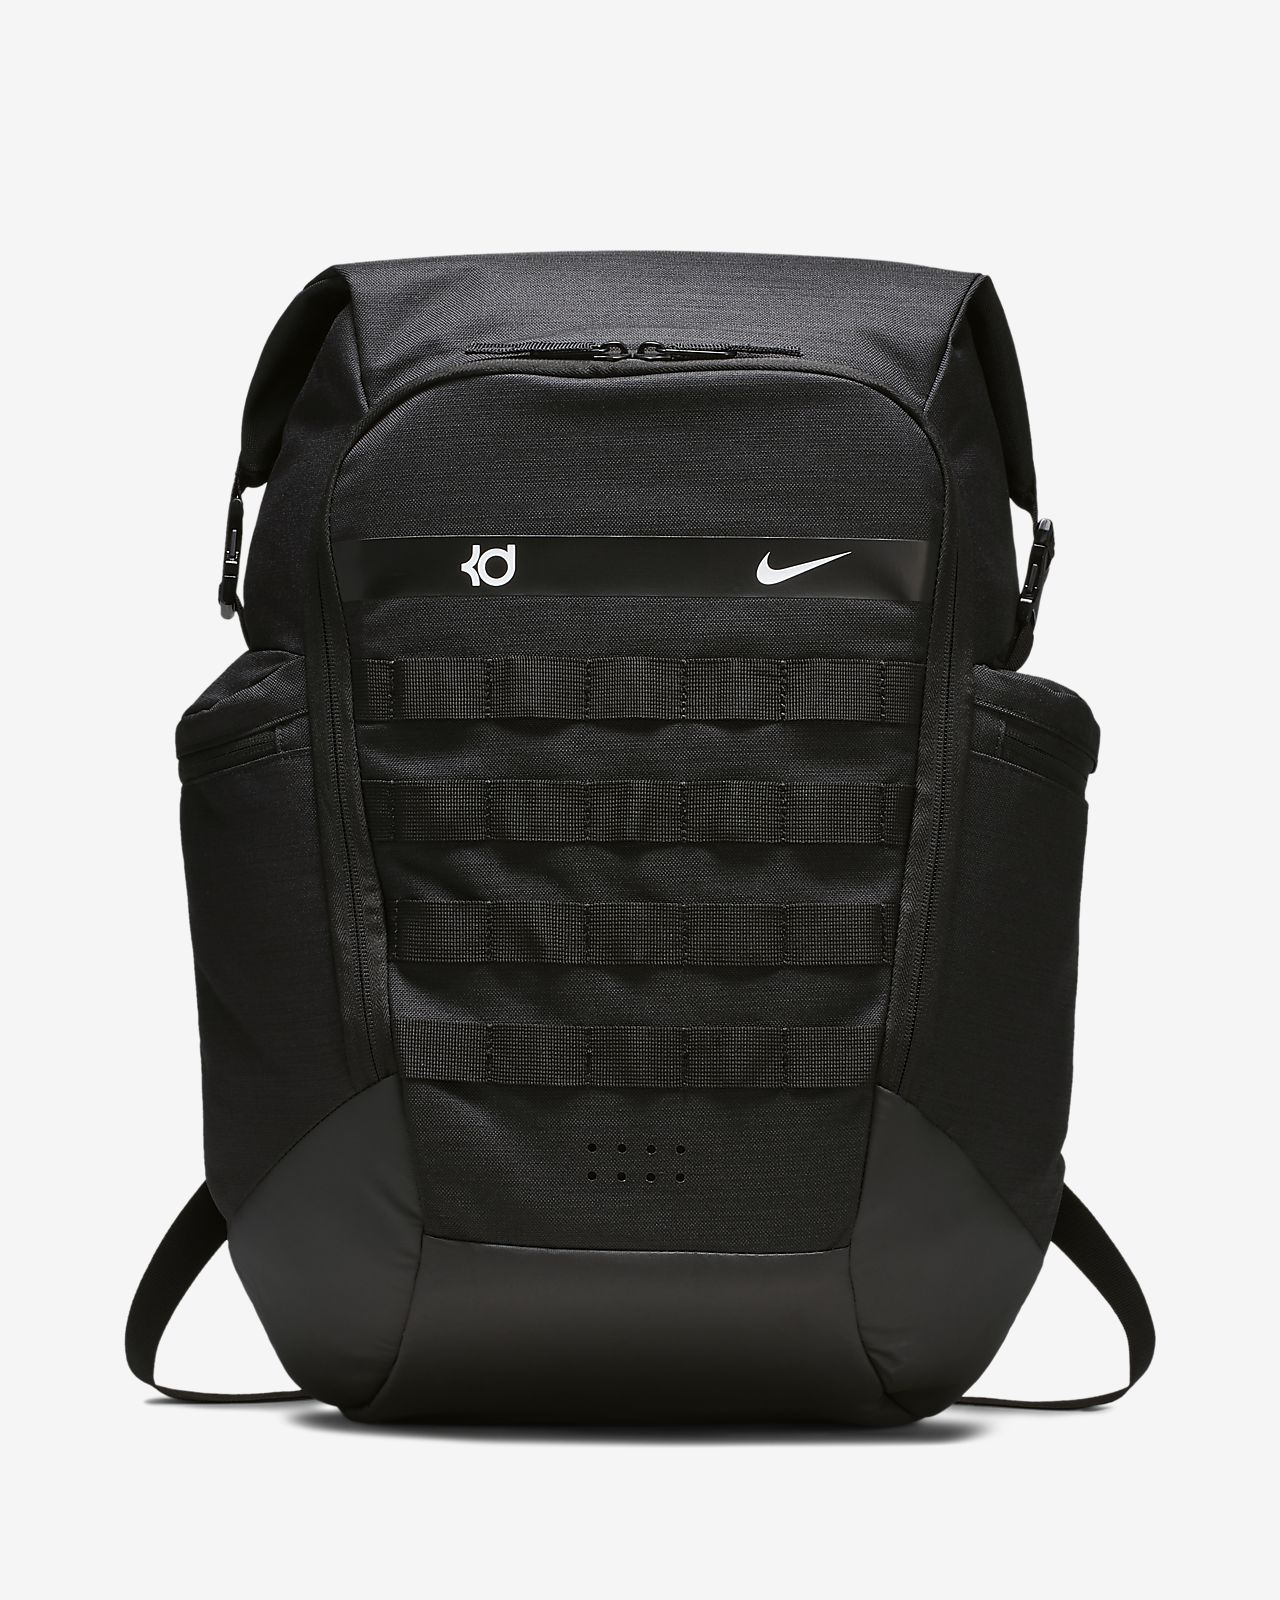 606f75fac48e KD Trey 5 Basketball Backpack. Nike.com